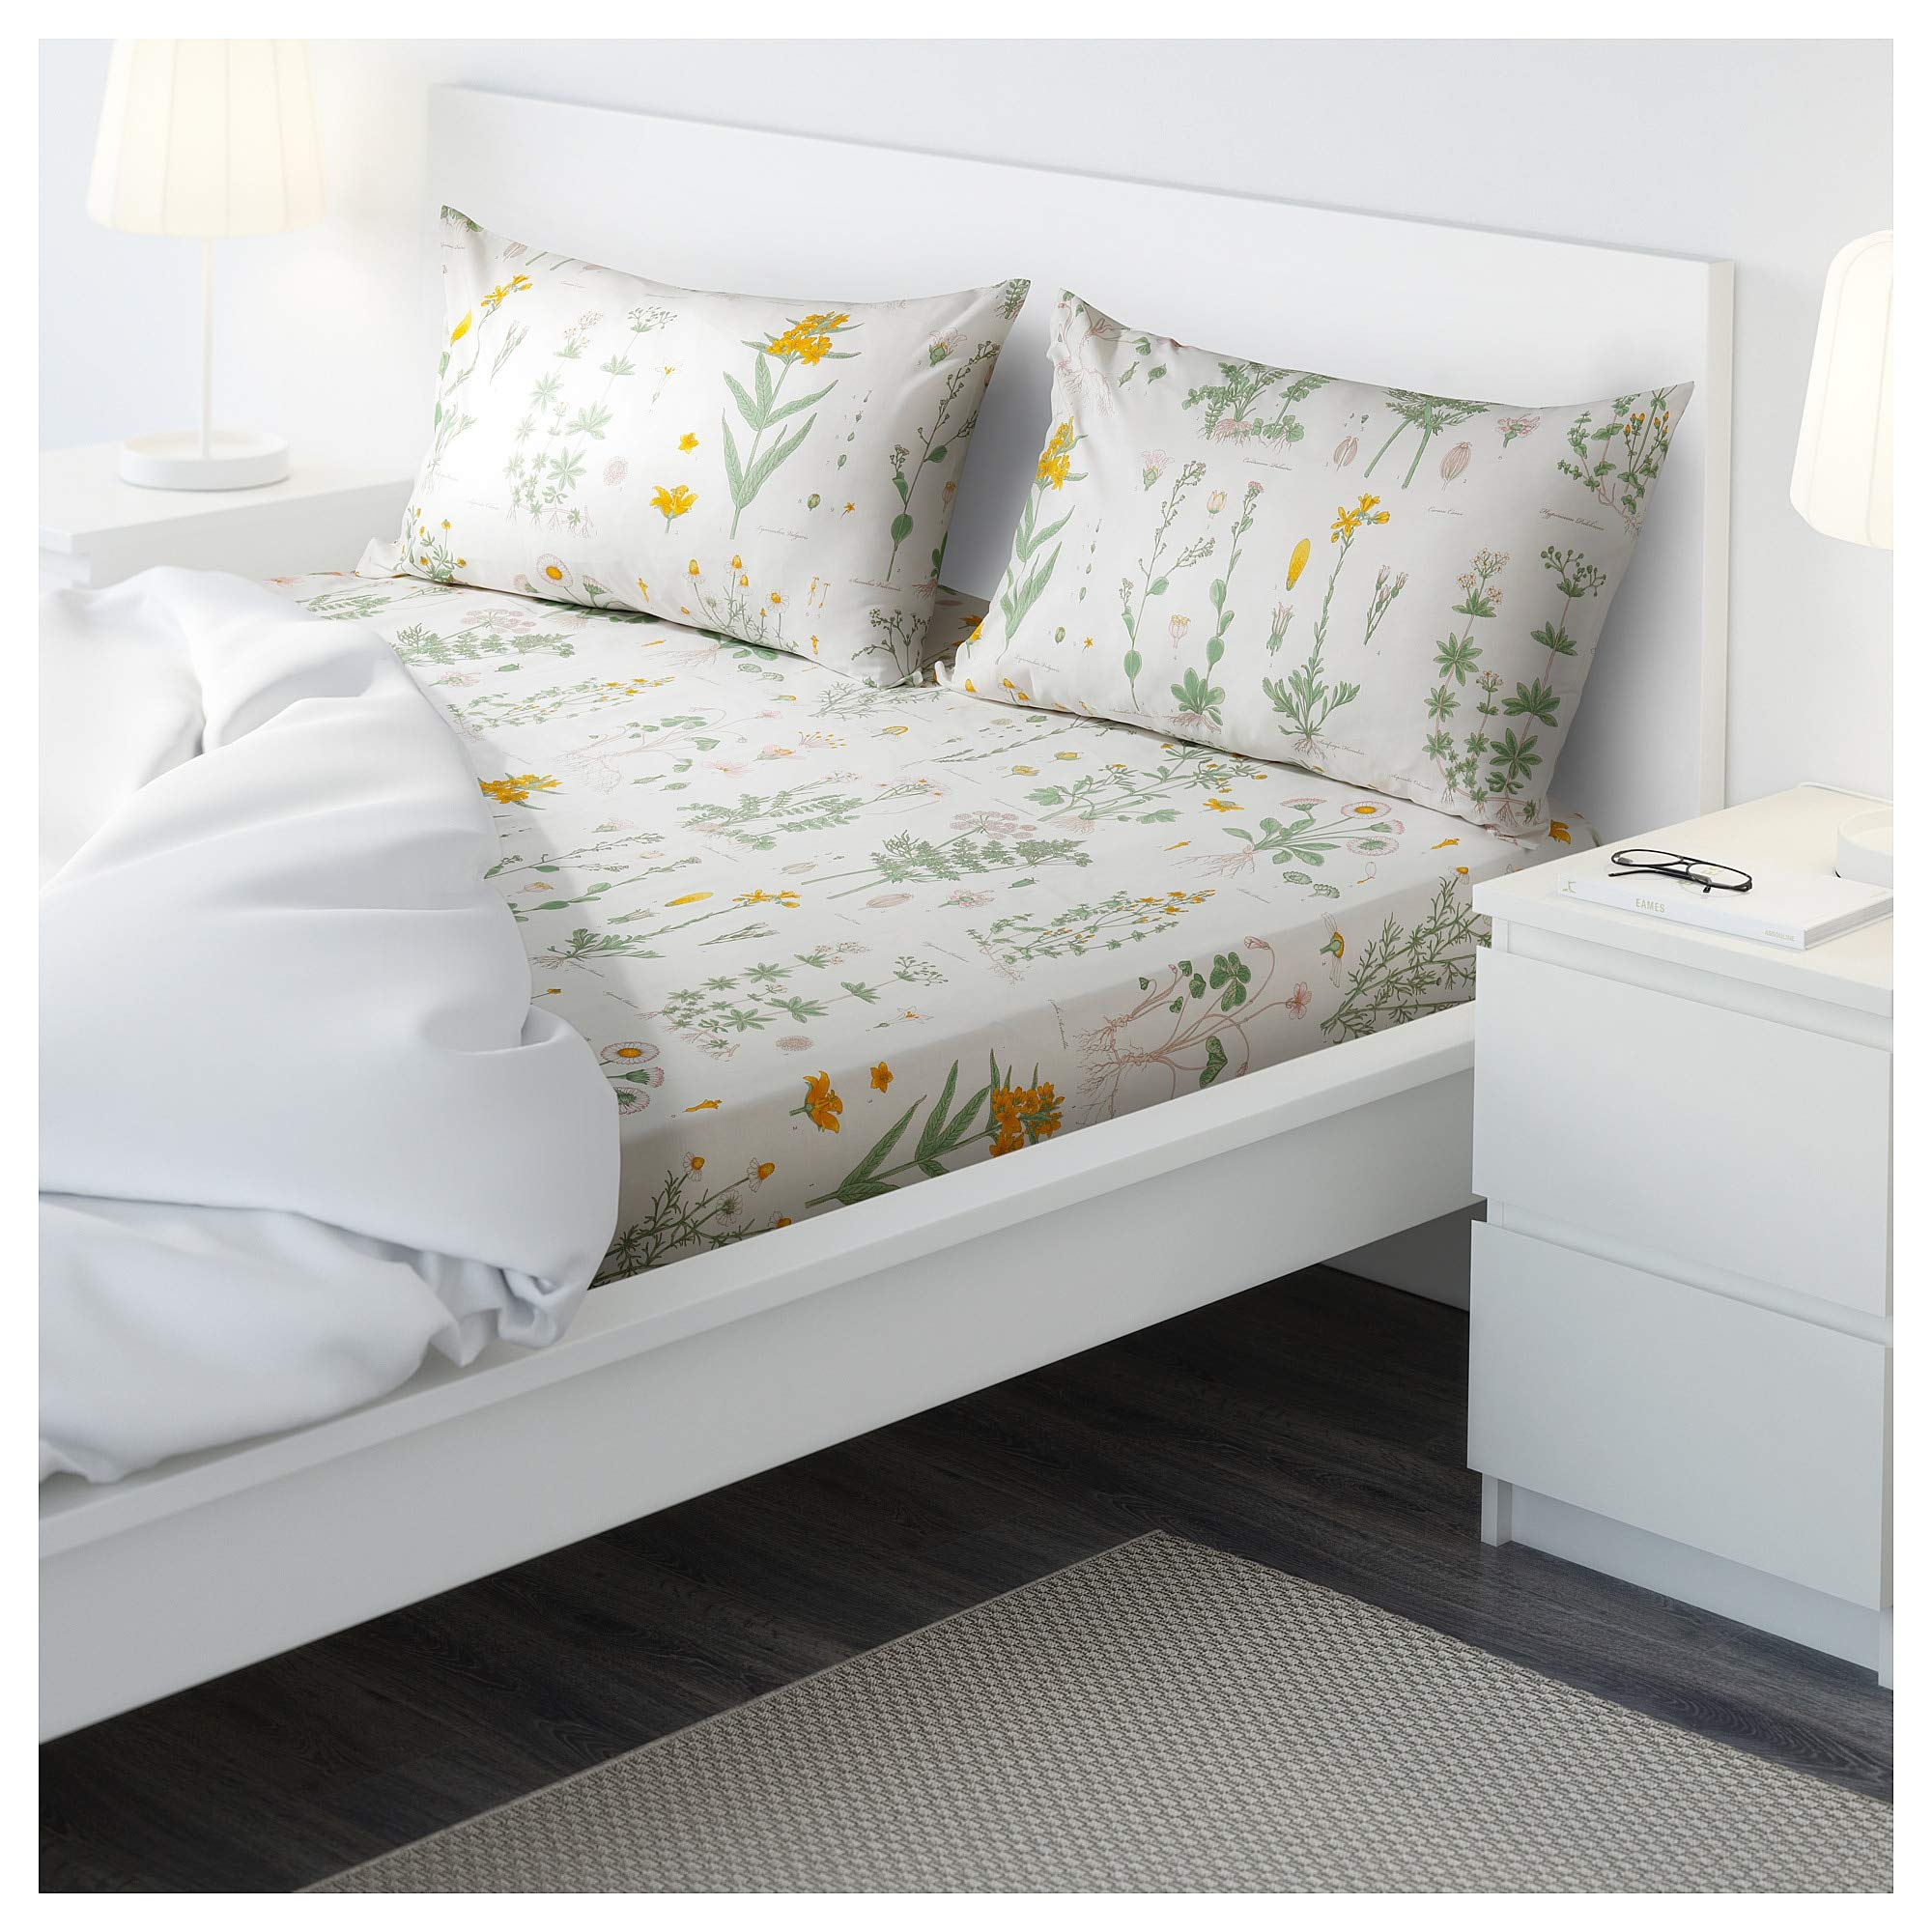 Ikea STRANDKRYPA Flat Sheet and 2 Pillowcase, Floral Patterned, White, 240x260/50x80 cm (94x102/20x32)